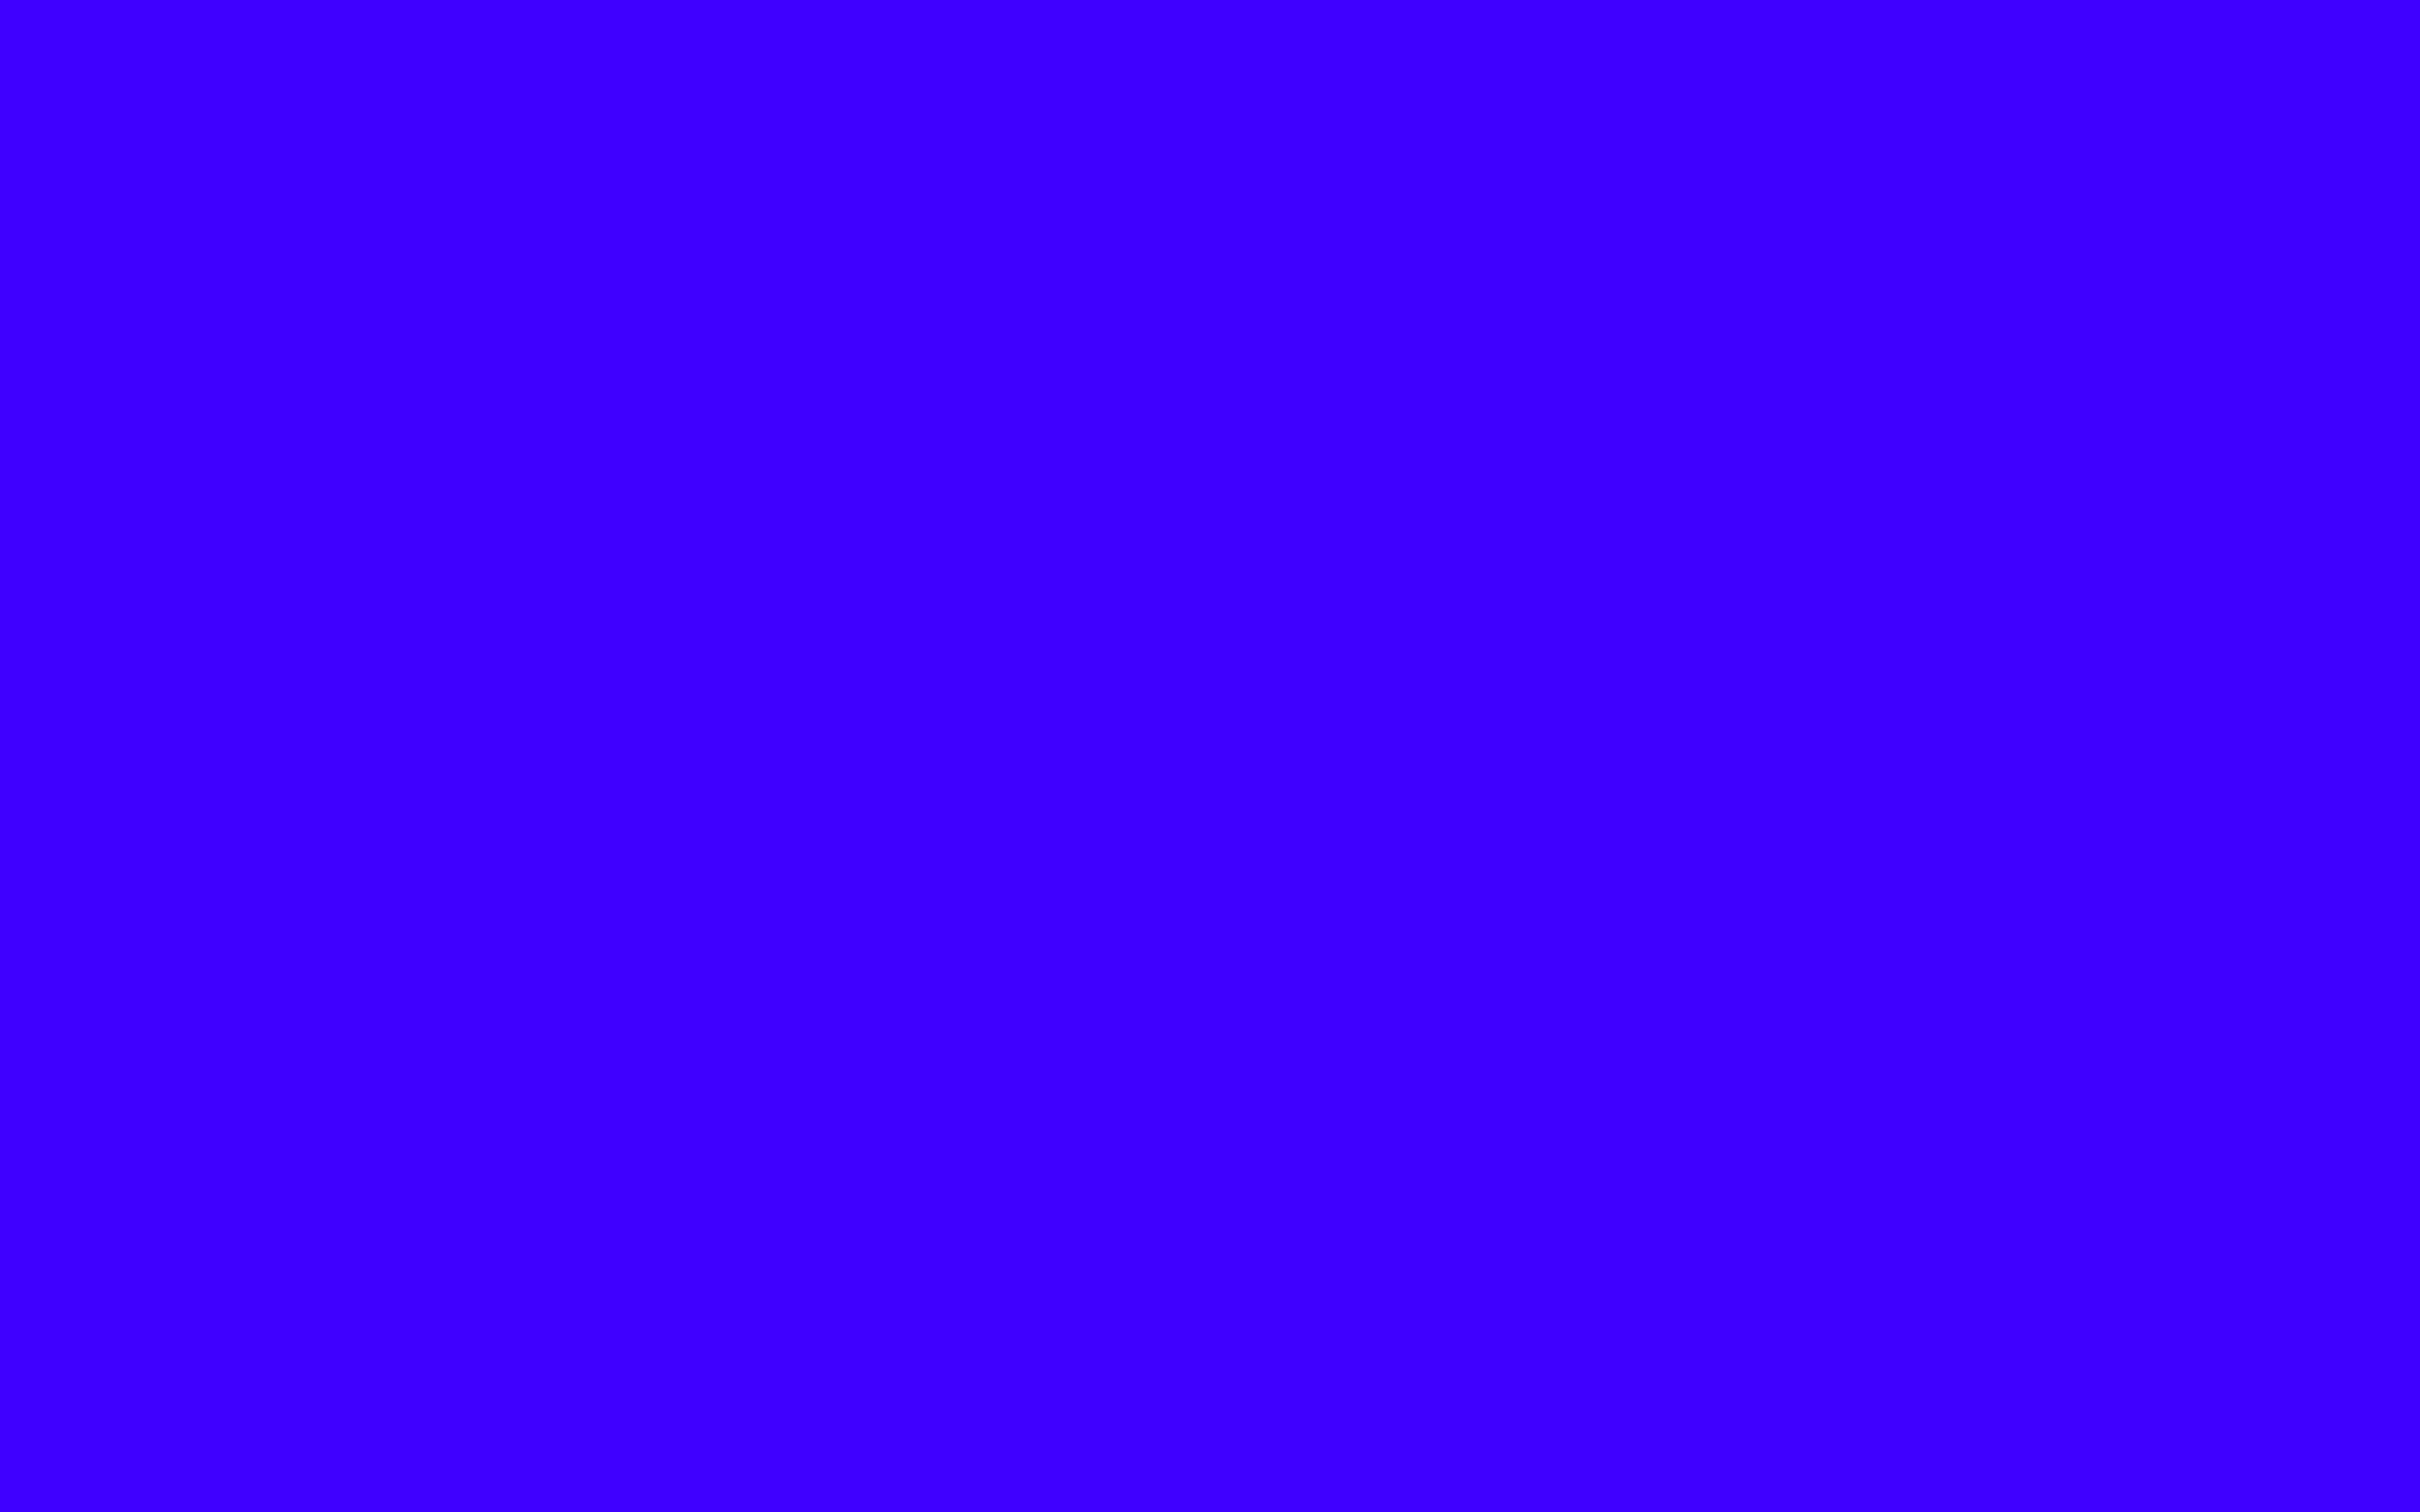 2560x1600 Electric Ultramarine Solid Color Background 2560x1600